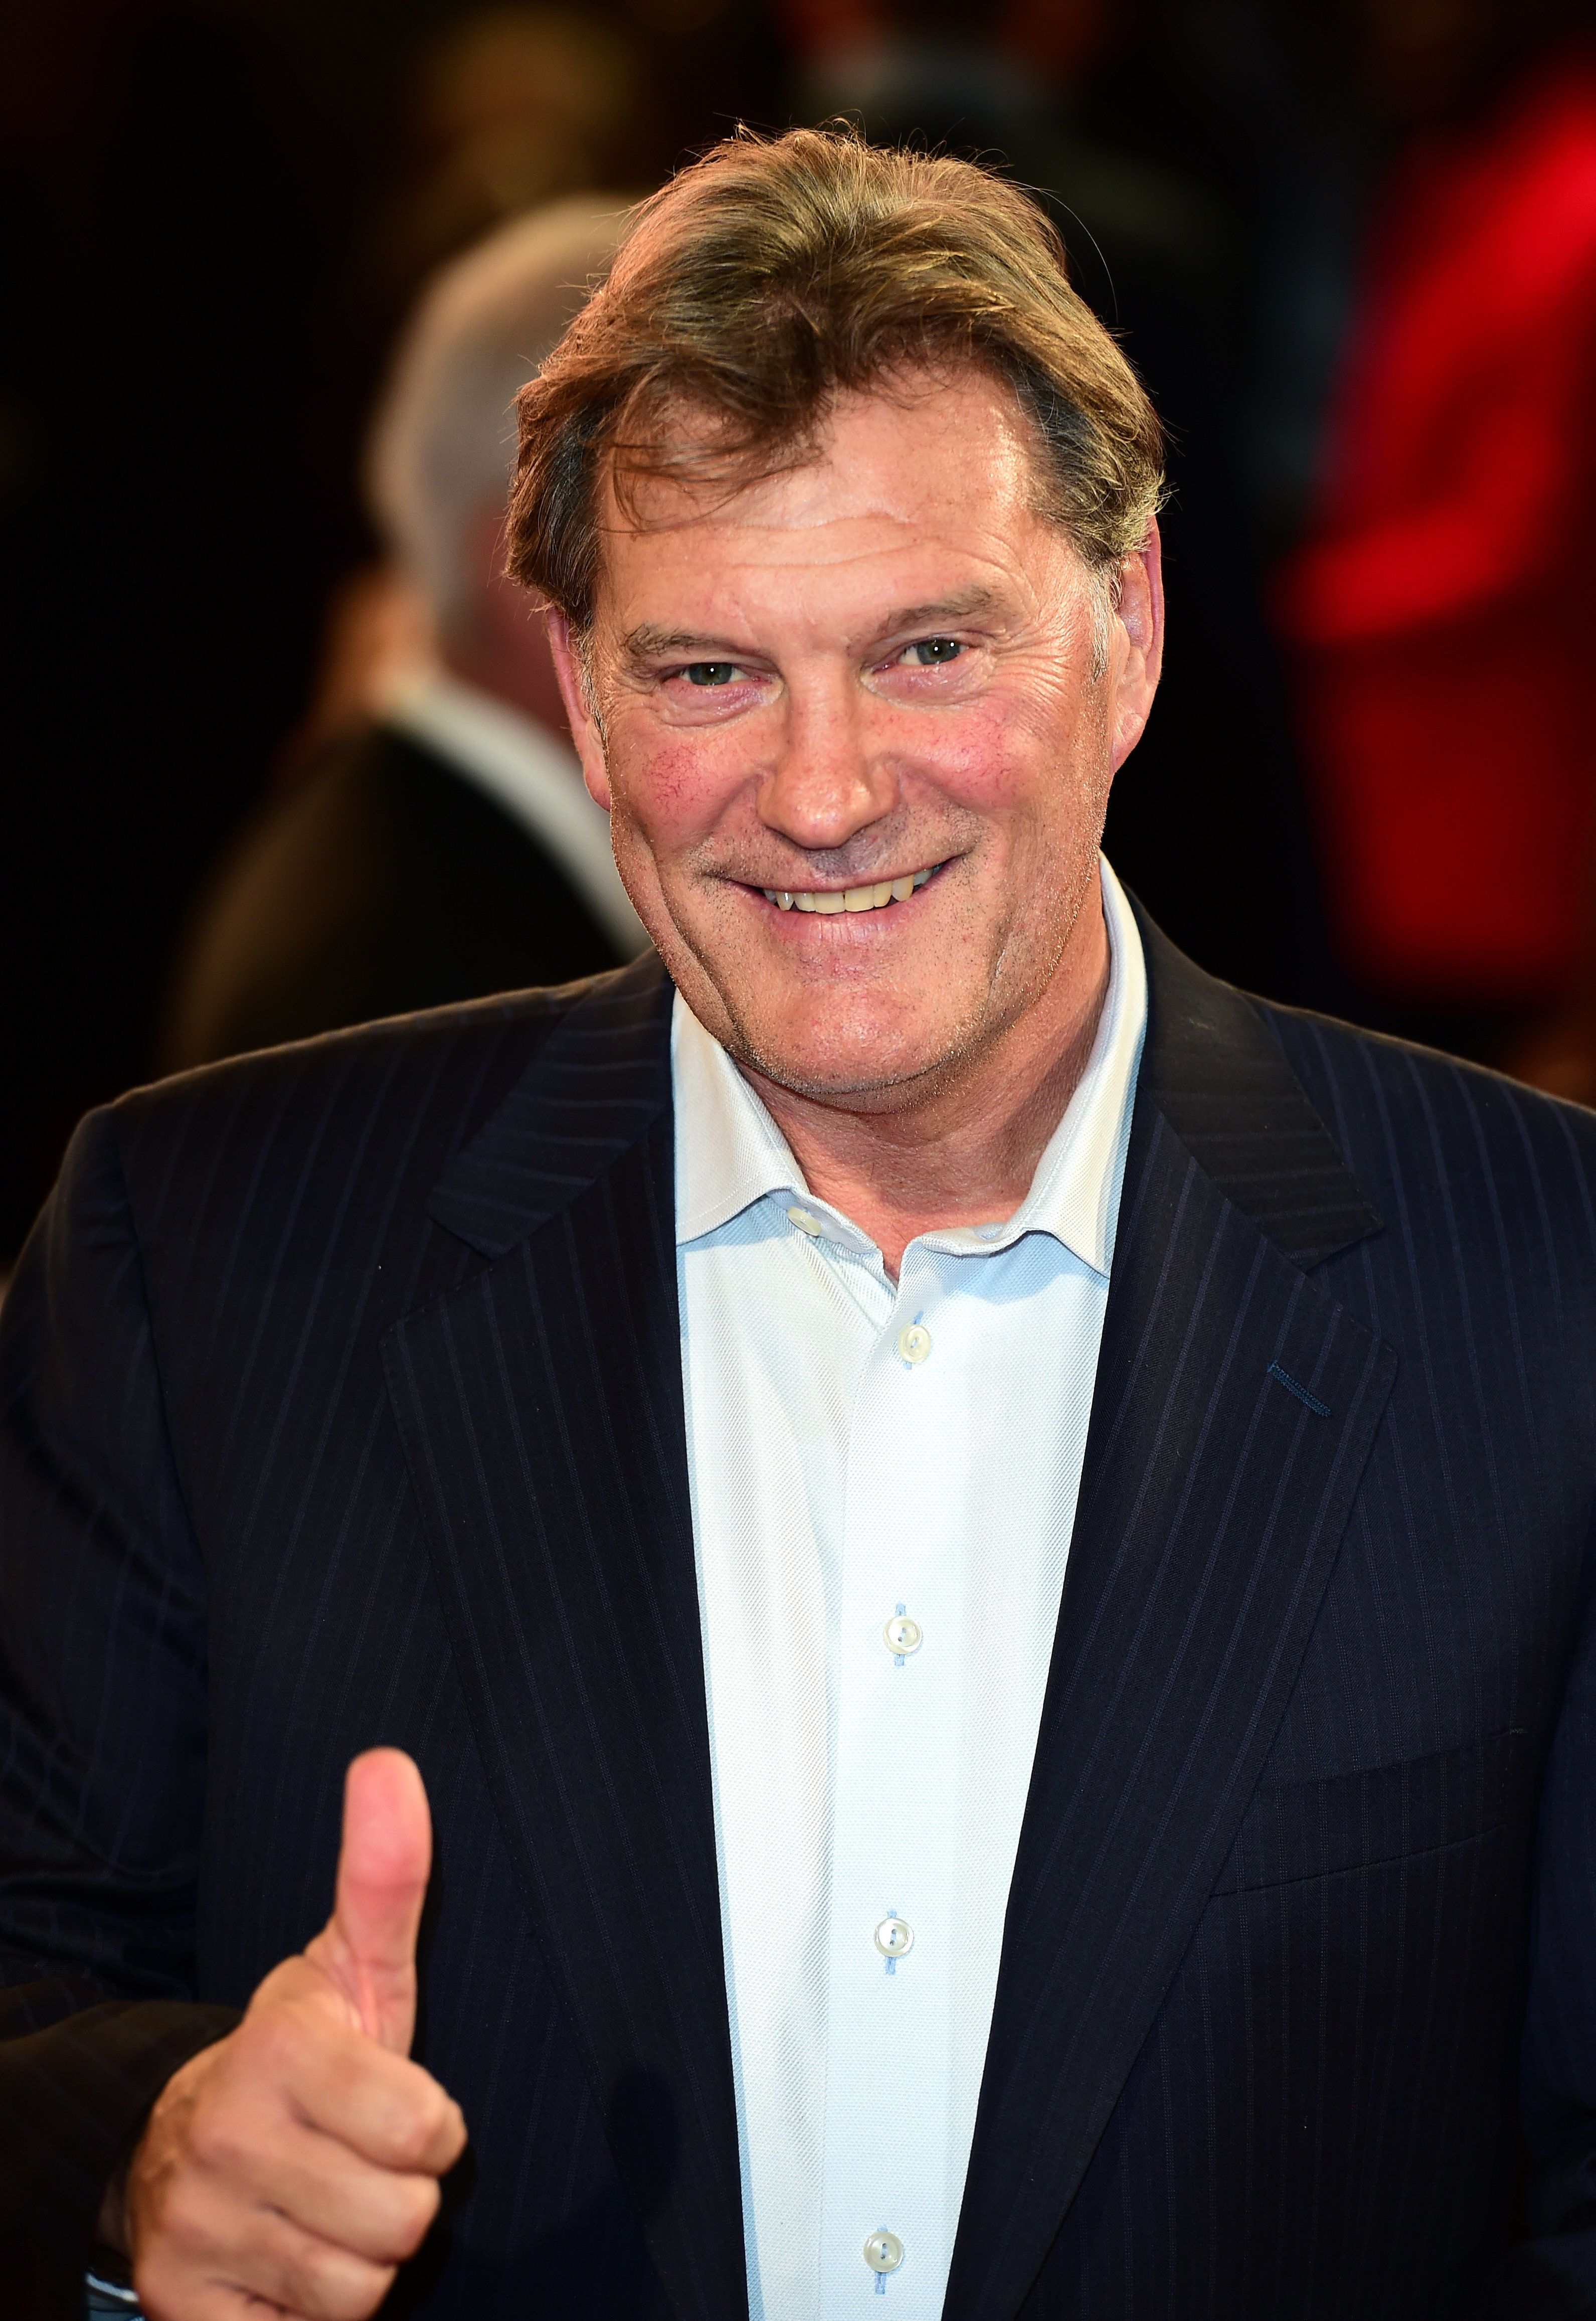 Glenn Hoddle 'In Serious Condition' After Having Heart Attack During Filming At BT Sport